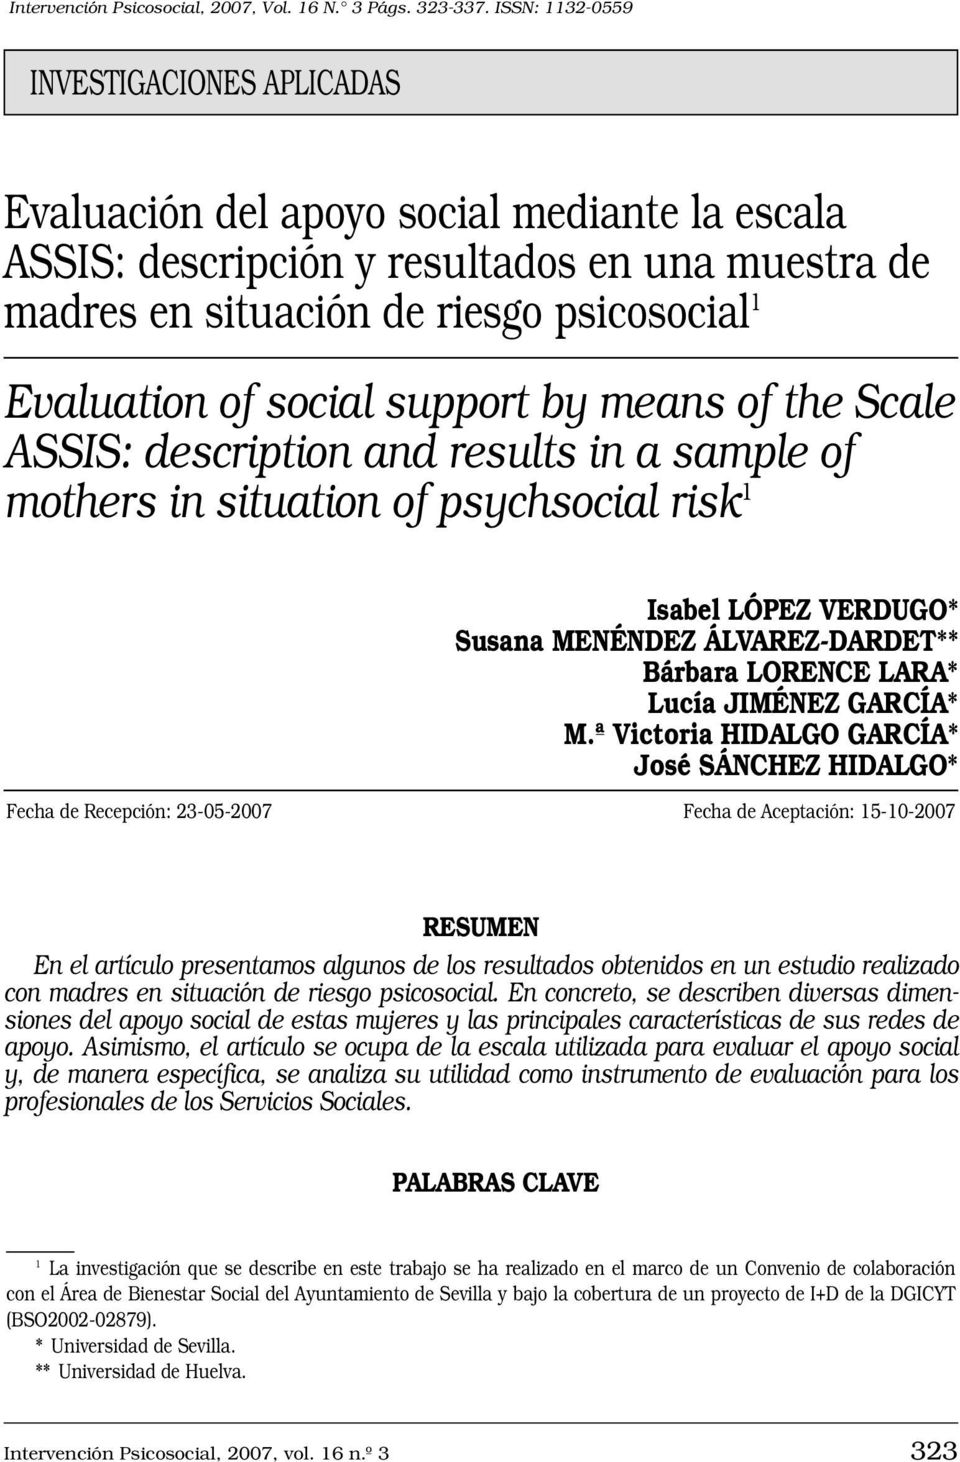 social support by means of the Scale ASSIS: description and results in a sample of mothers in situation of psychsocial risk 1 Isabel LÓPEZ VERDUGO* Susana MENÉNDEZ ÁLVAREZ-DARDET** Bárbara LORENCE